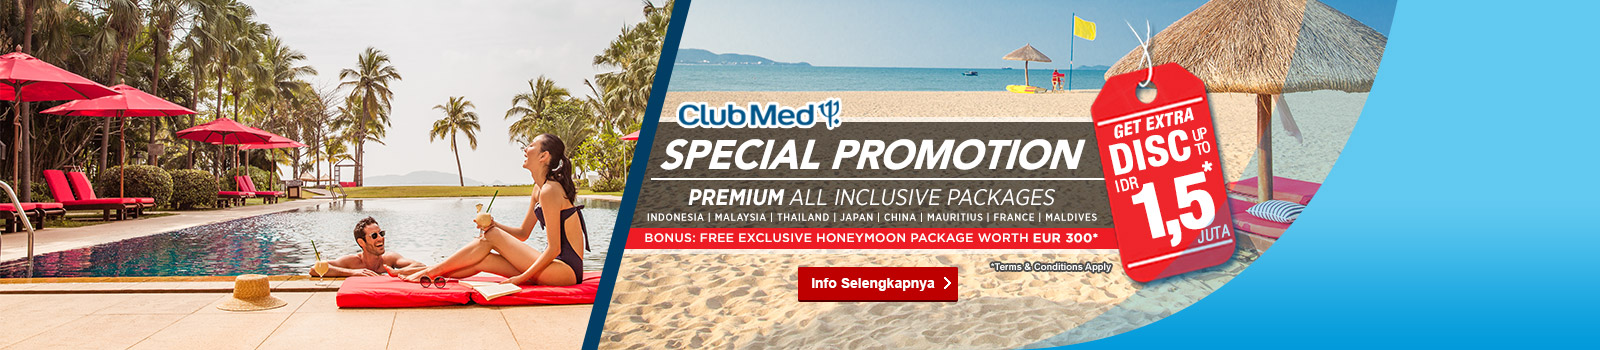 Club Med Premium all-inclusive resorts